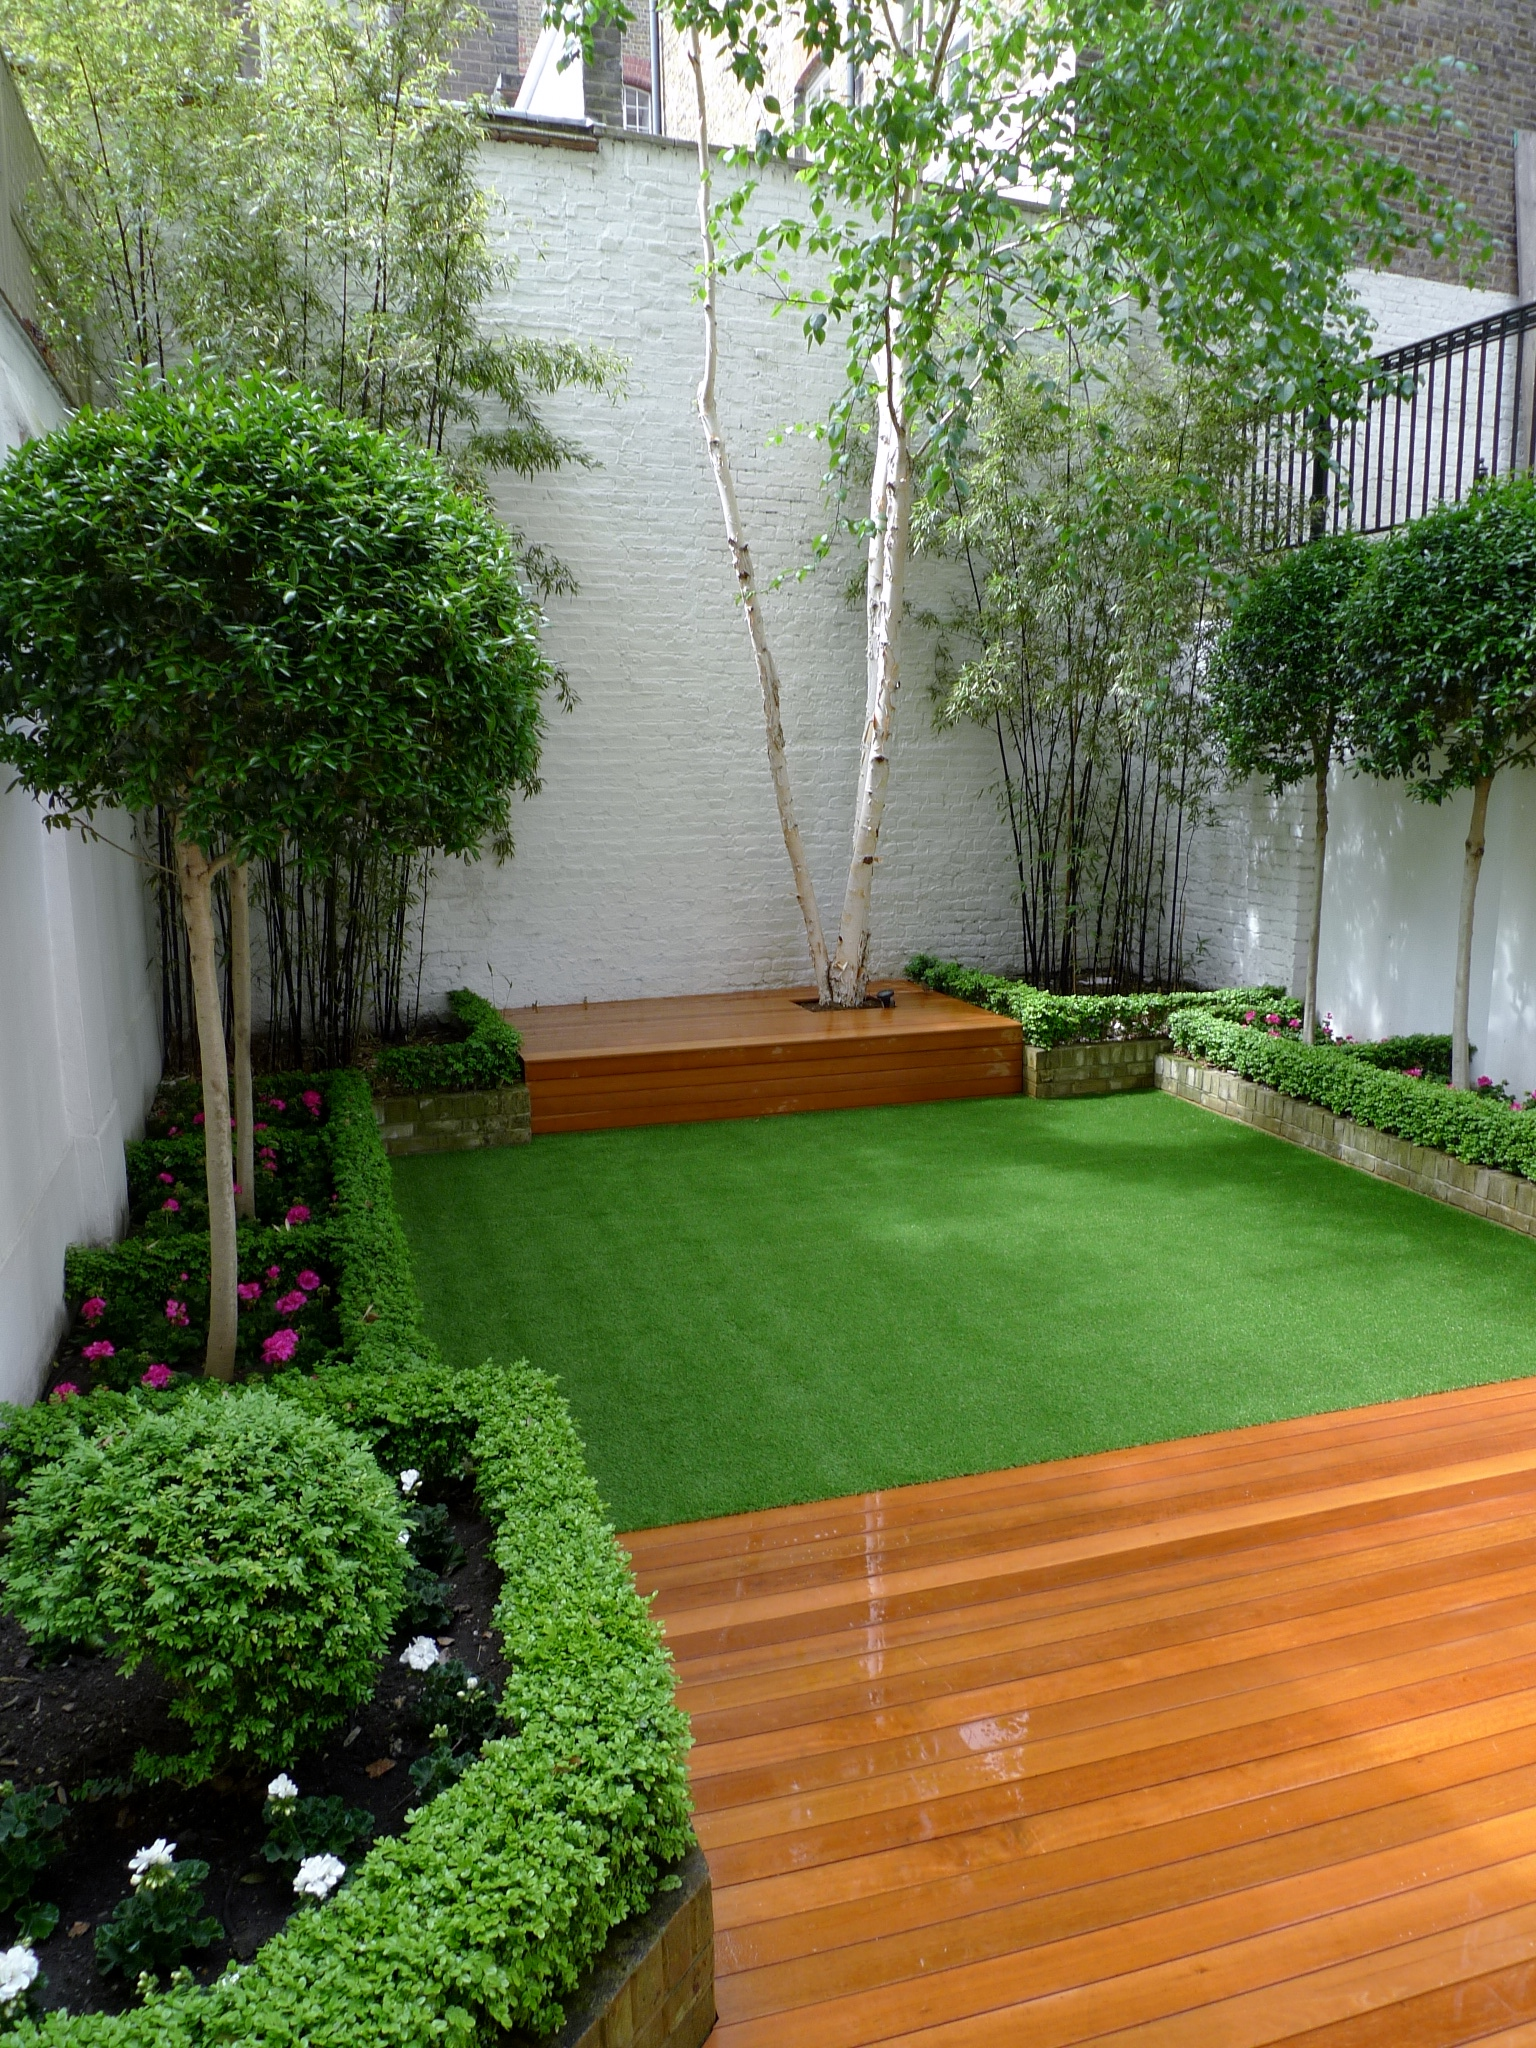 Chelsea modern garden design london london garden blog - Garden ideas london ...